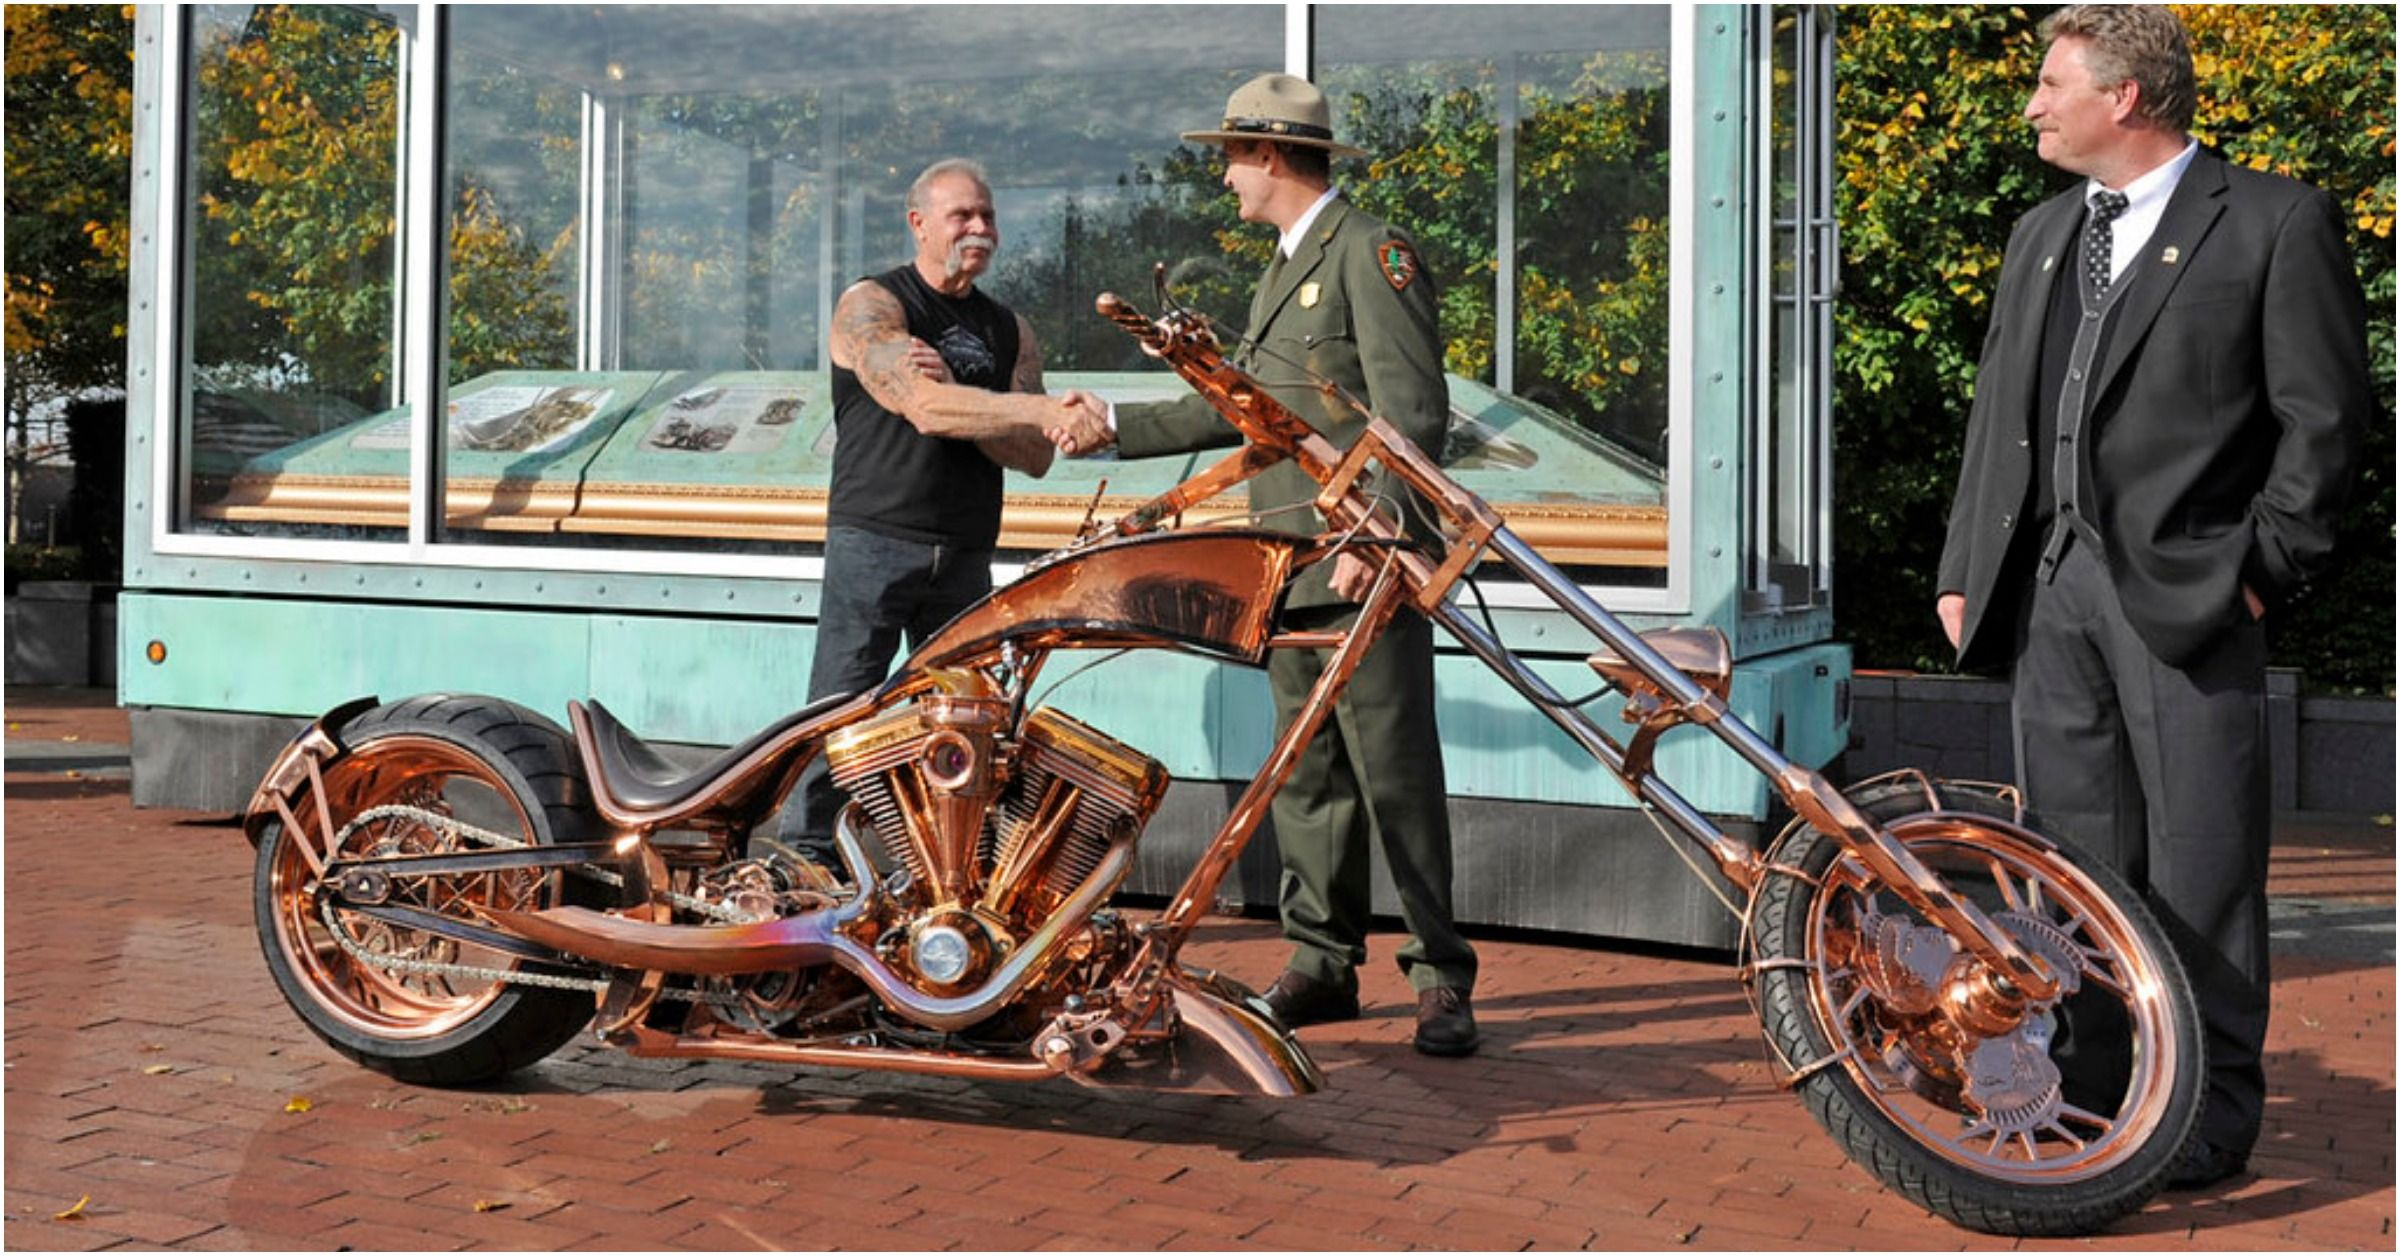 14 Most Insane Bikes Featured On American Chopper (1 That's Hideous)